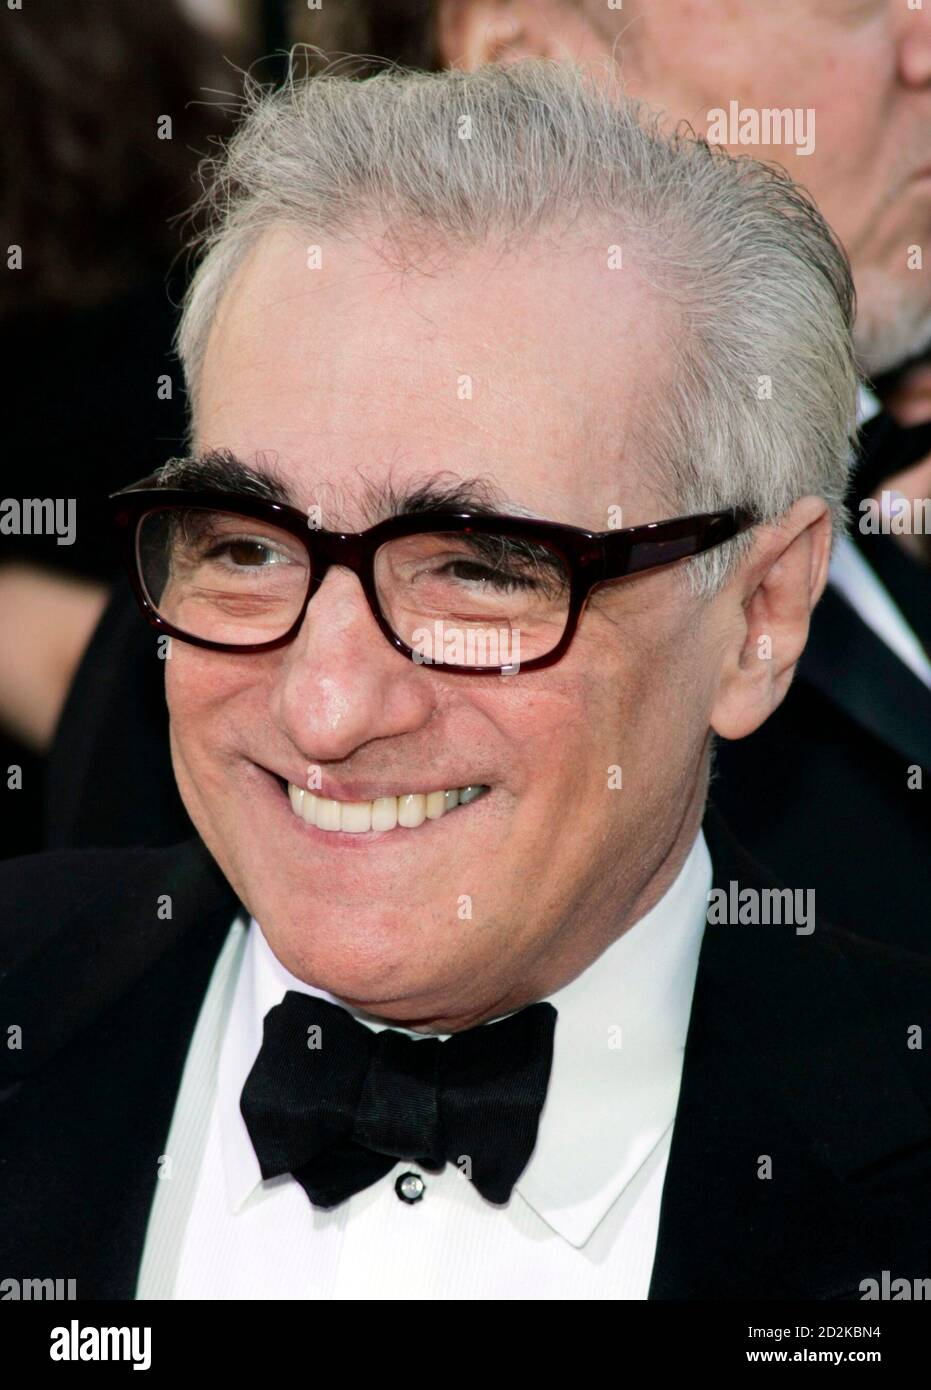 Director and nominee Martin Scorsese arrives at the 64th annual Golden Globe Awards in Beverly Hills, California January 15, 2007. Scorsese is nominated for best director - motion picture for 'The Departed.'     REUTERS/Lucy Nicholson (UNITED STATES) Stock Photo